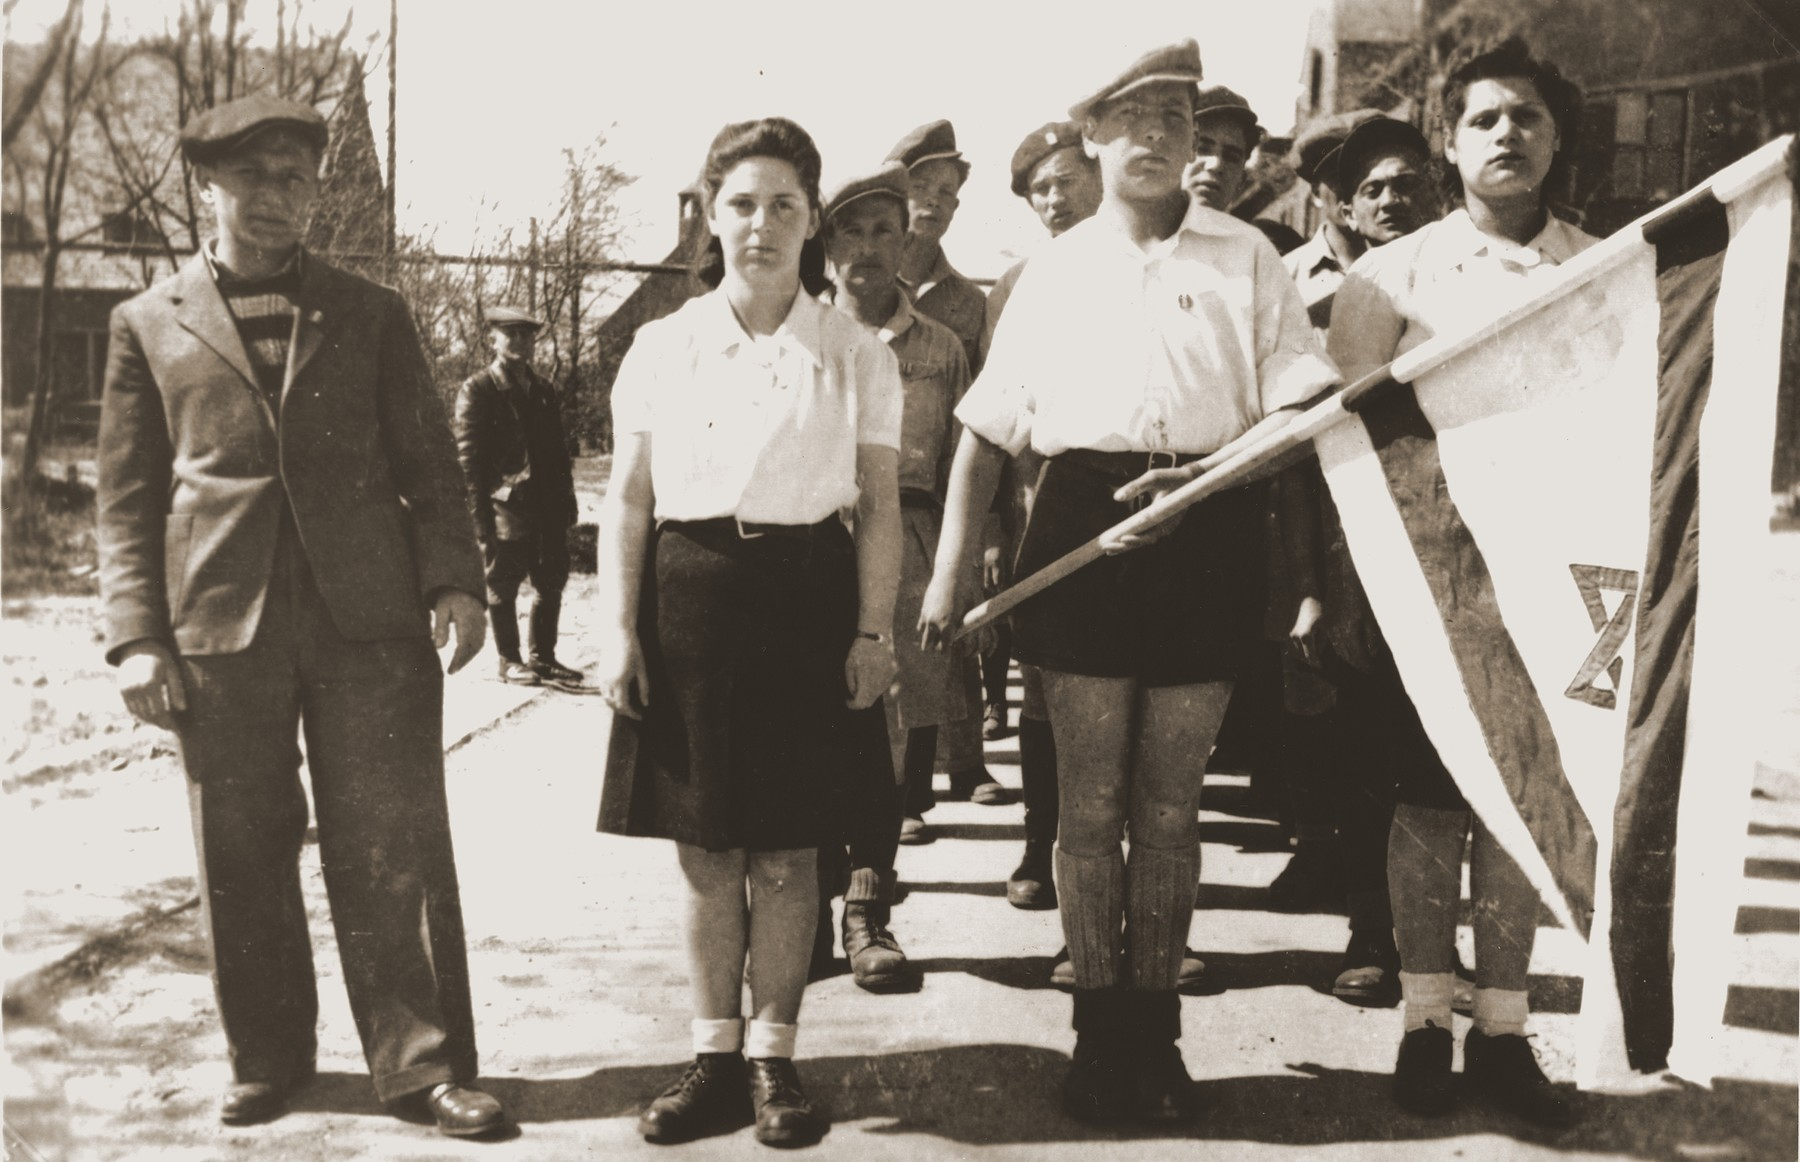 Young DPs march in a Zionist demonstration at the Bergen-Belsen displaced persons camp.